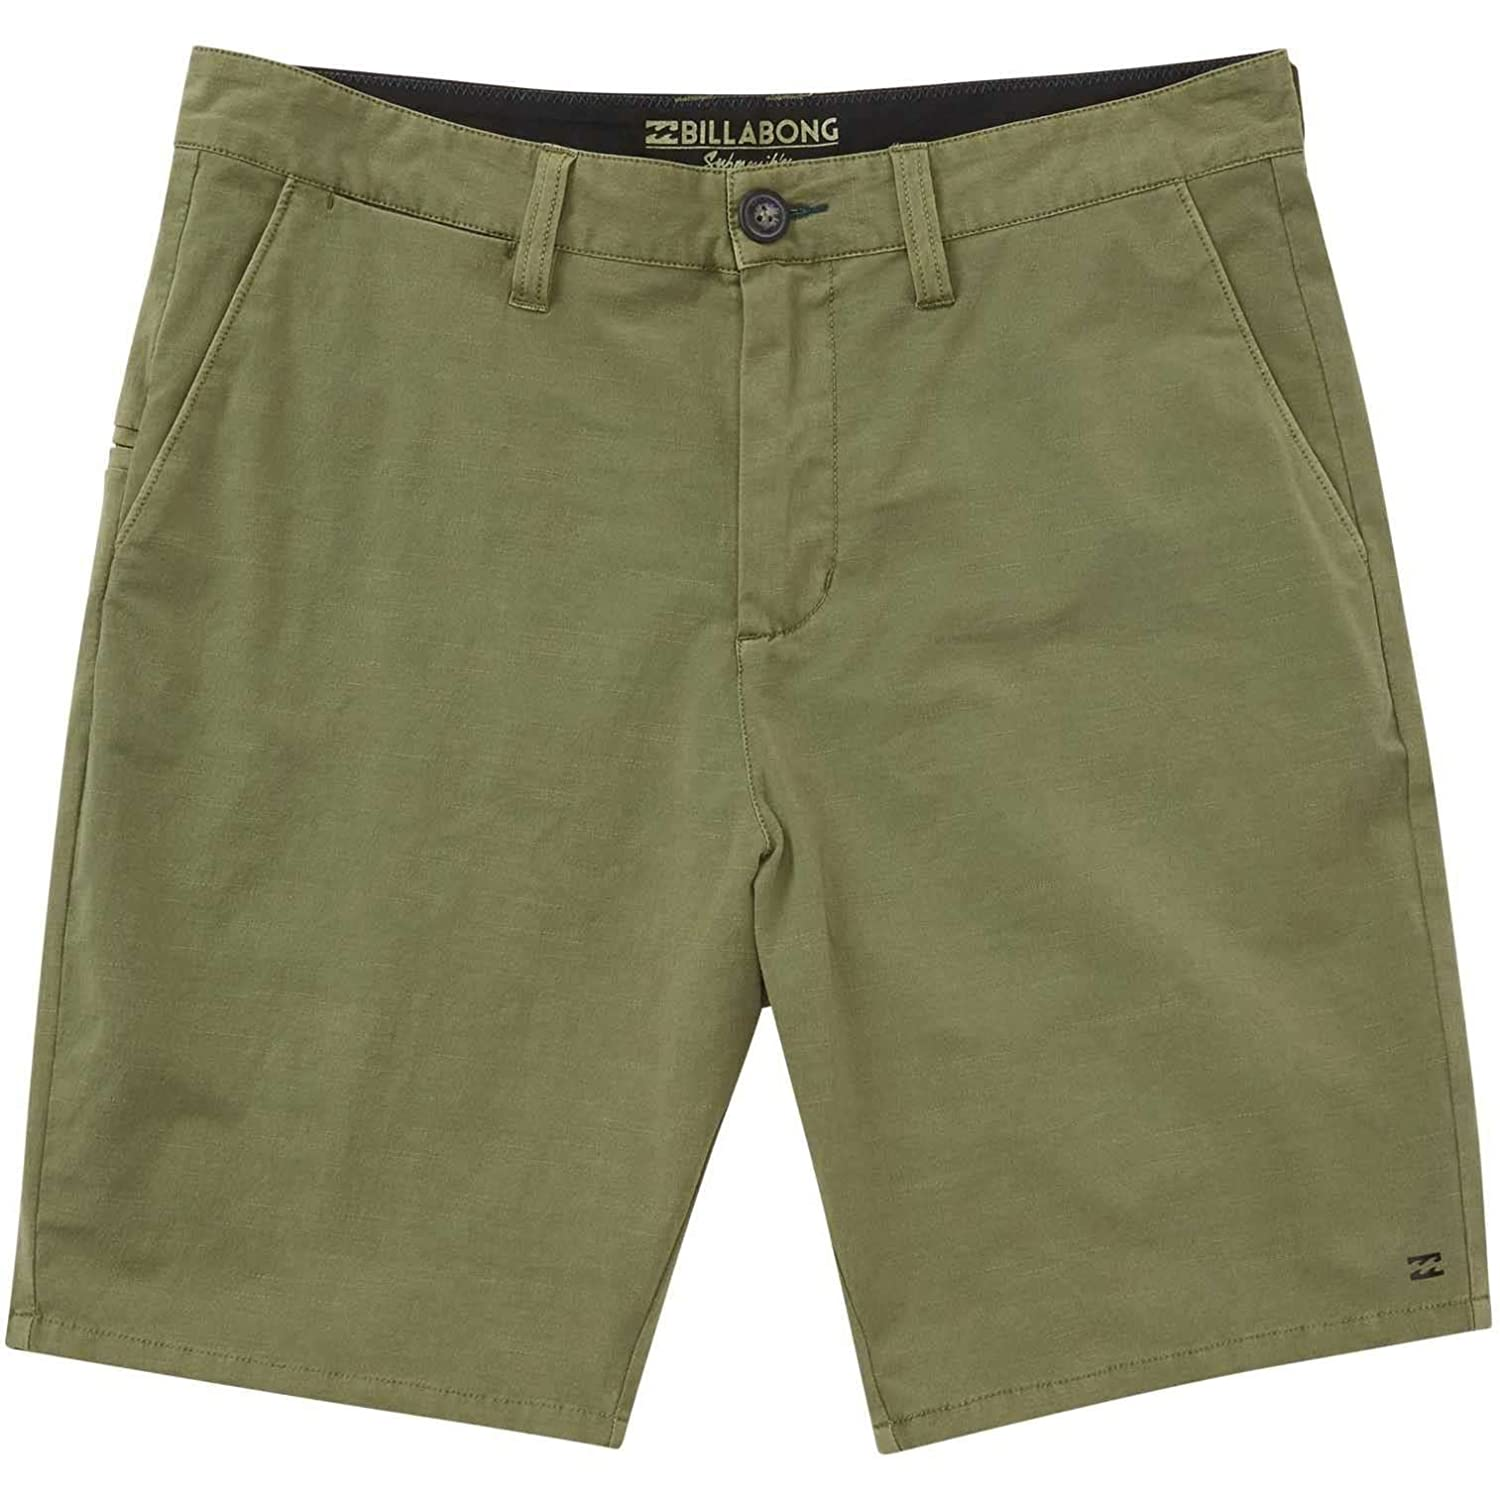 ebb14efc74b58 Amazon.com: Billabong Men's New Order X 19 Inch Submersible Short ...